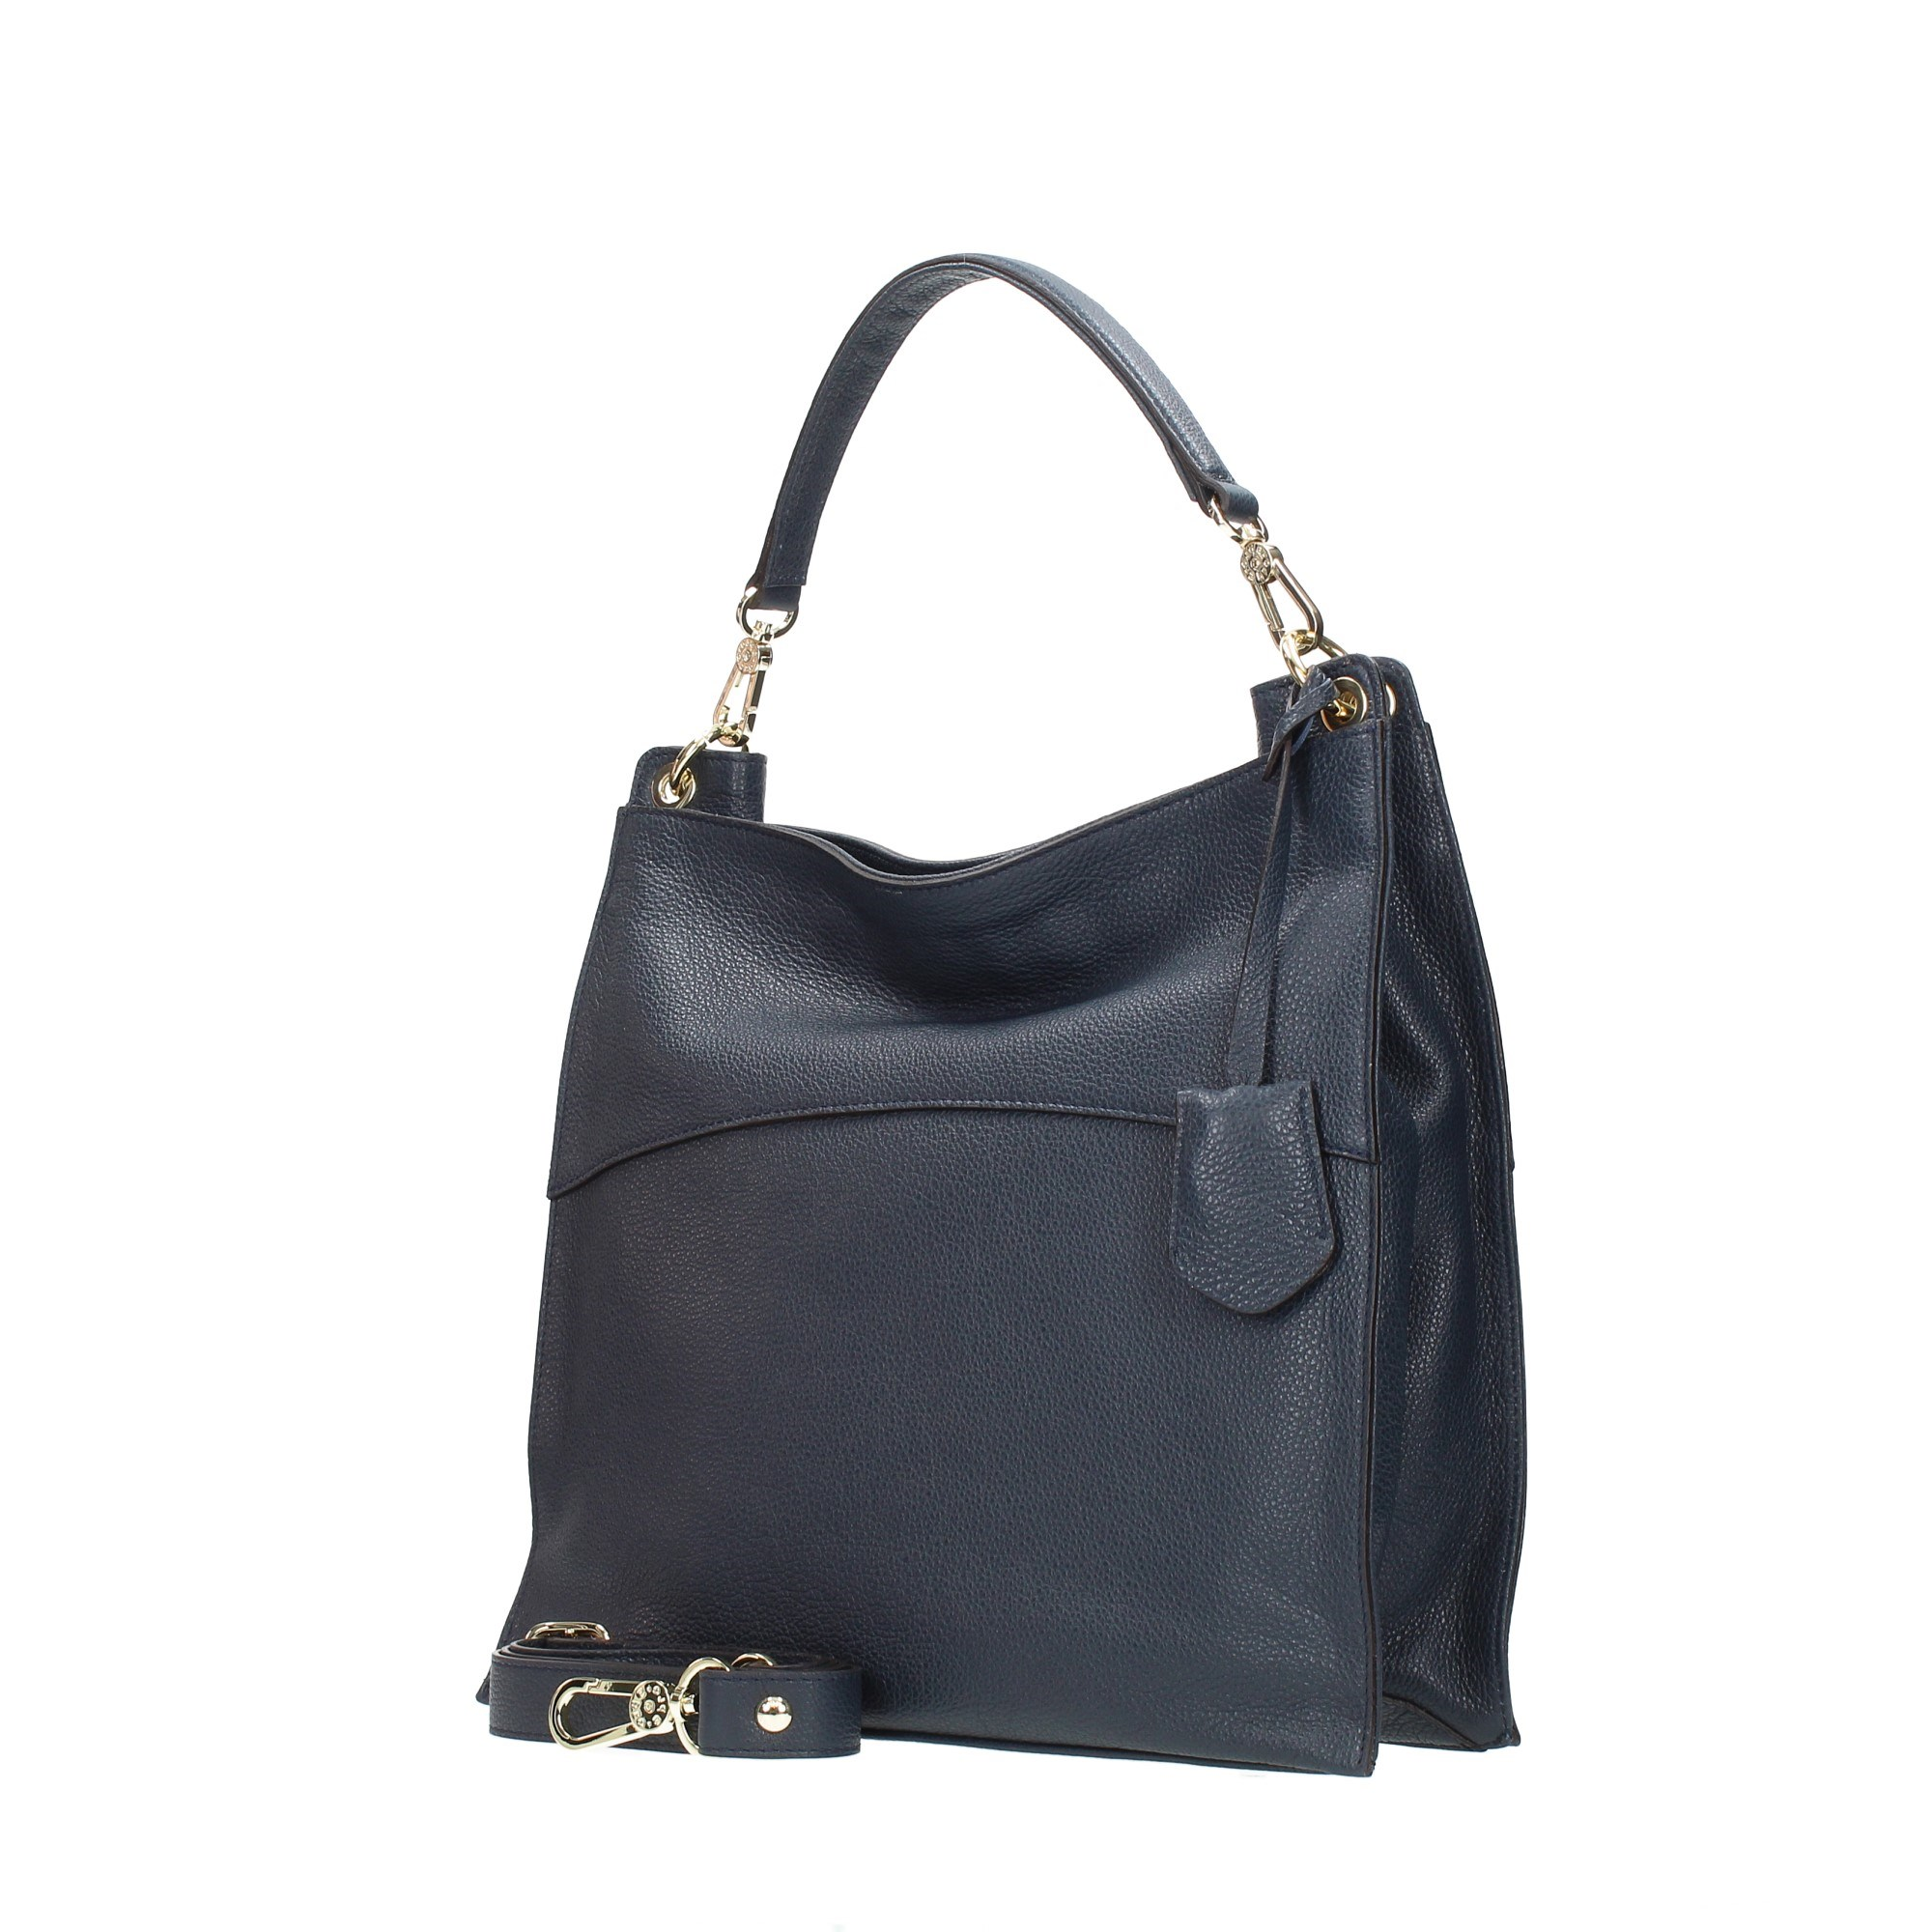 Abro Accessories Women Shoulder Bags Blue 029120-35